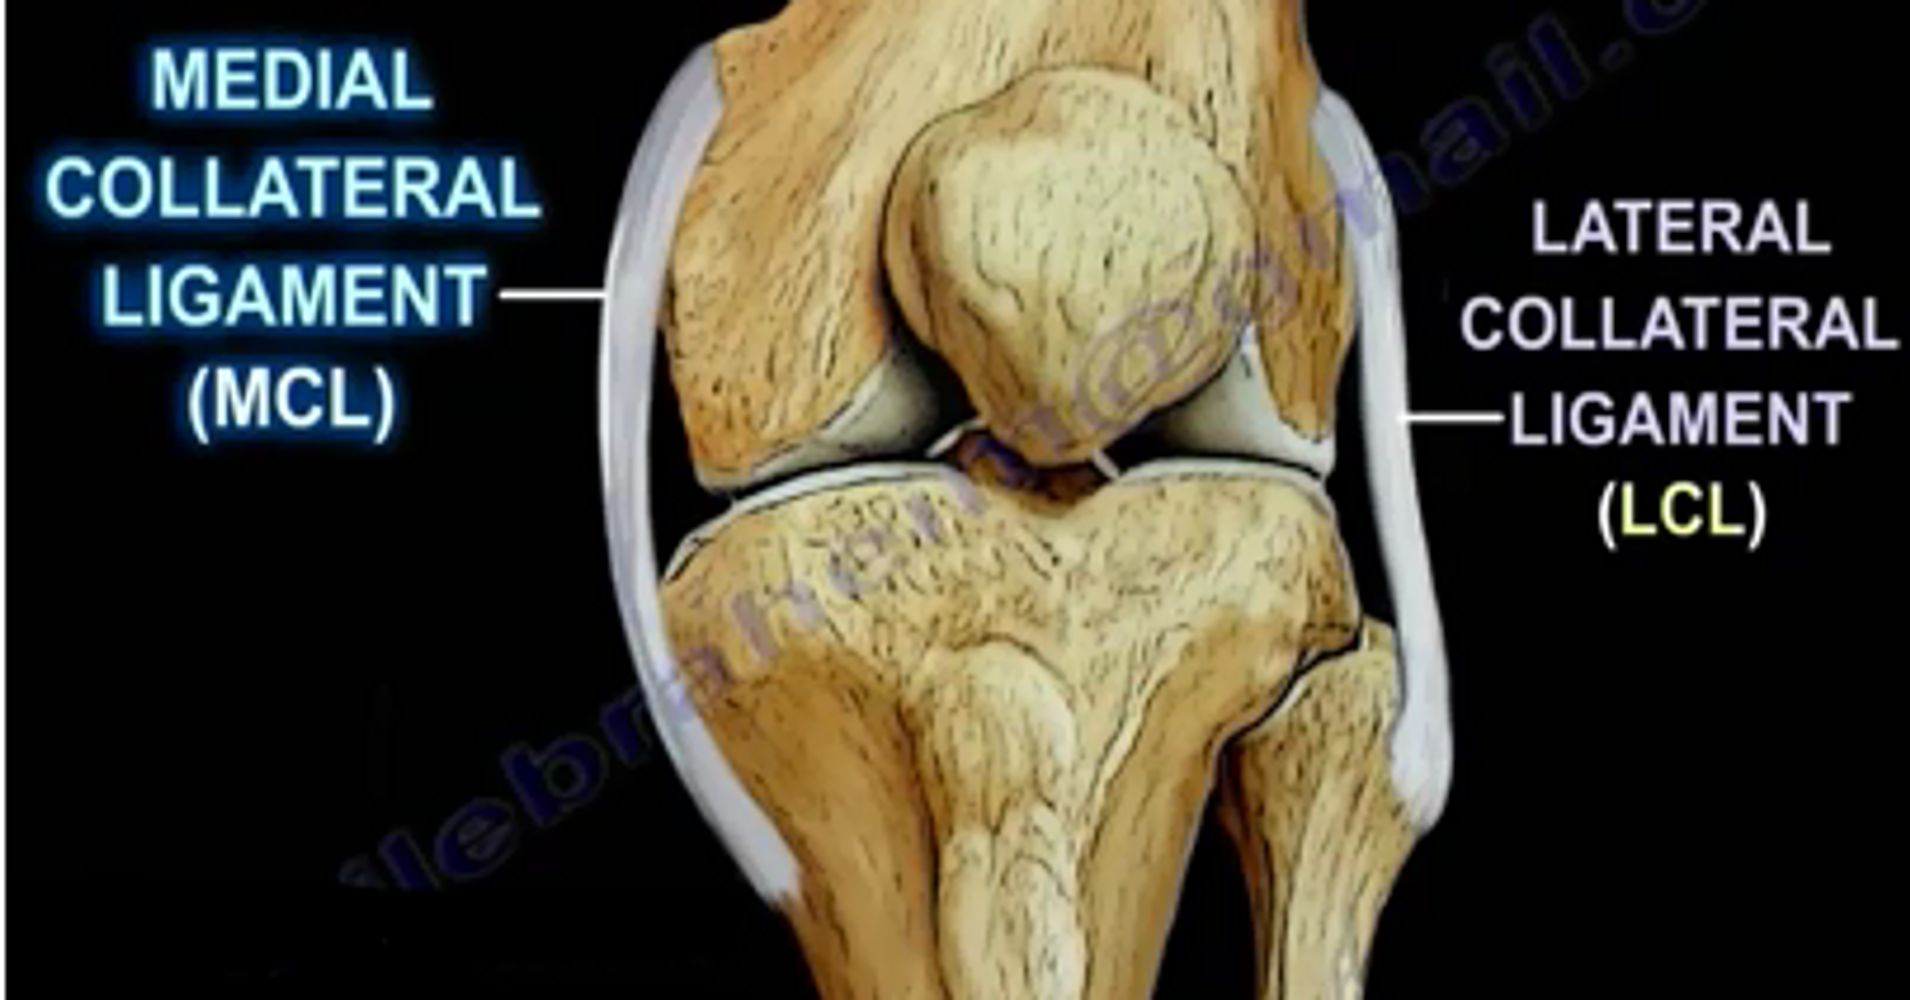 Medial Collateral Ligament Injuries Huffpost